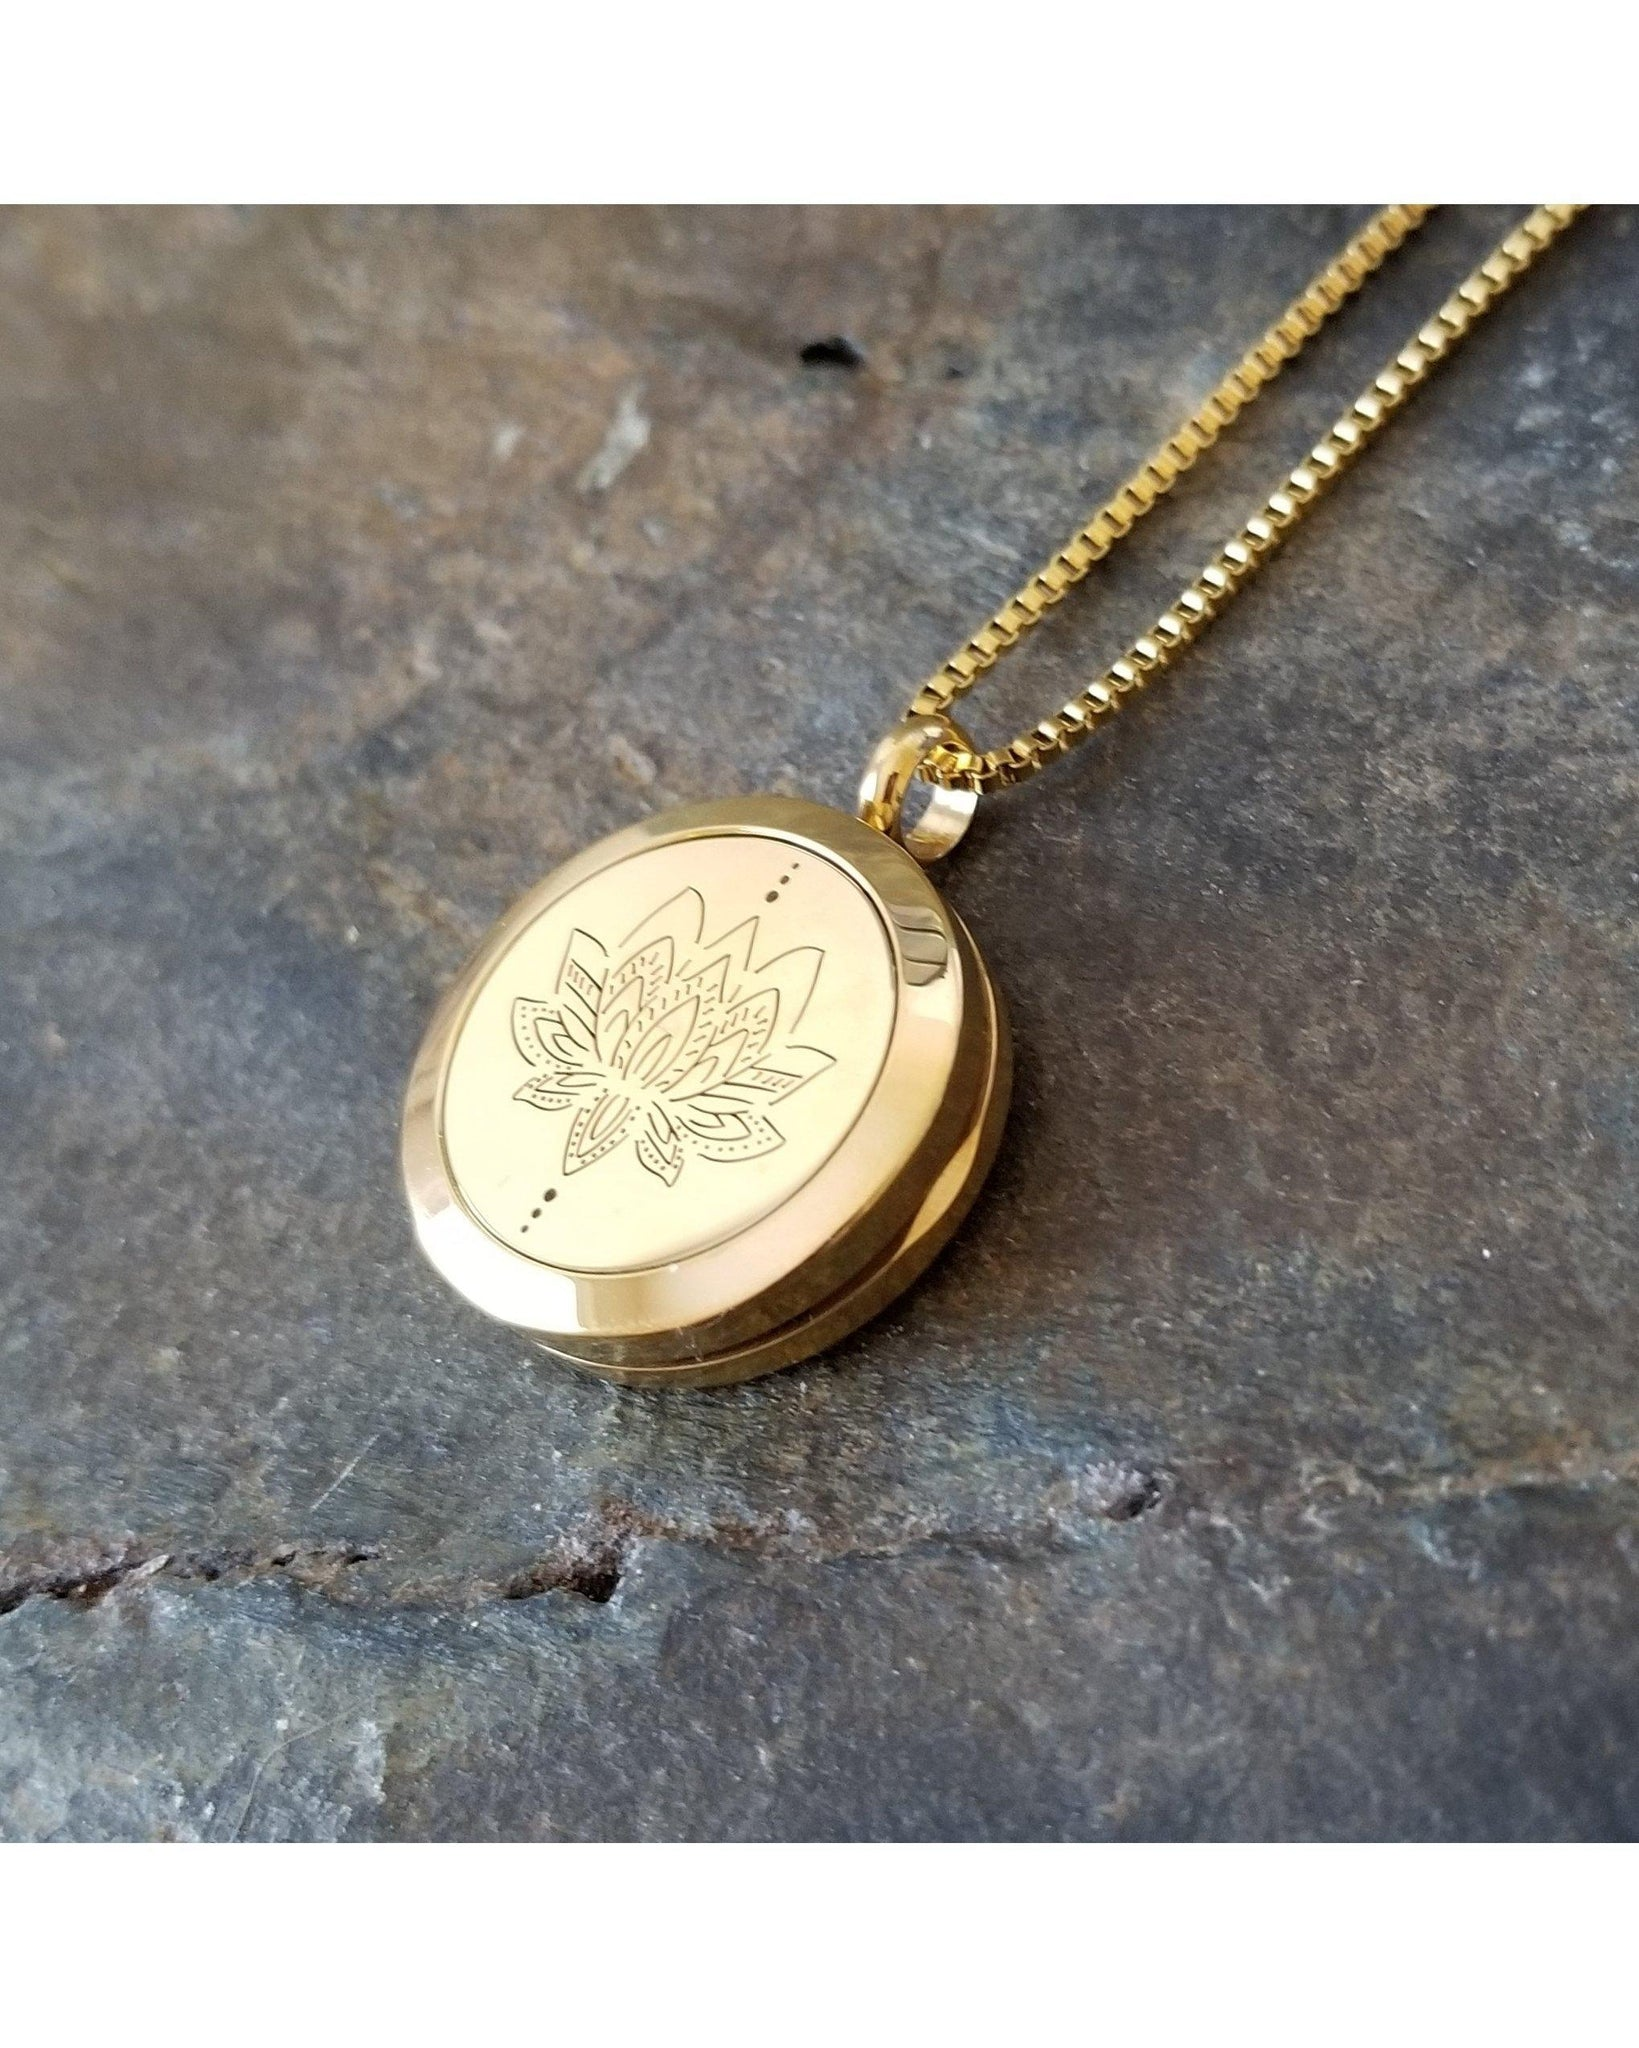 EE Exclusive **Lotus** 25mm Gold and 316L Stainless Steel Essential Oil Aromatherapy Diffuser Pendant Necklace S027 - Essentially Elegant